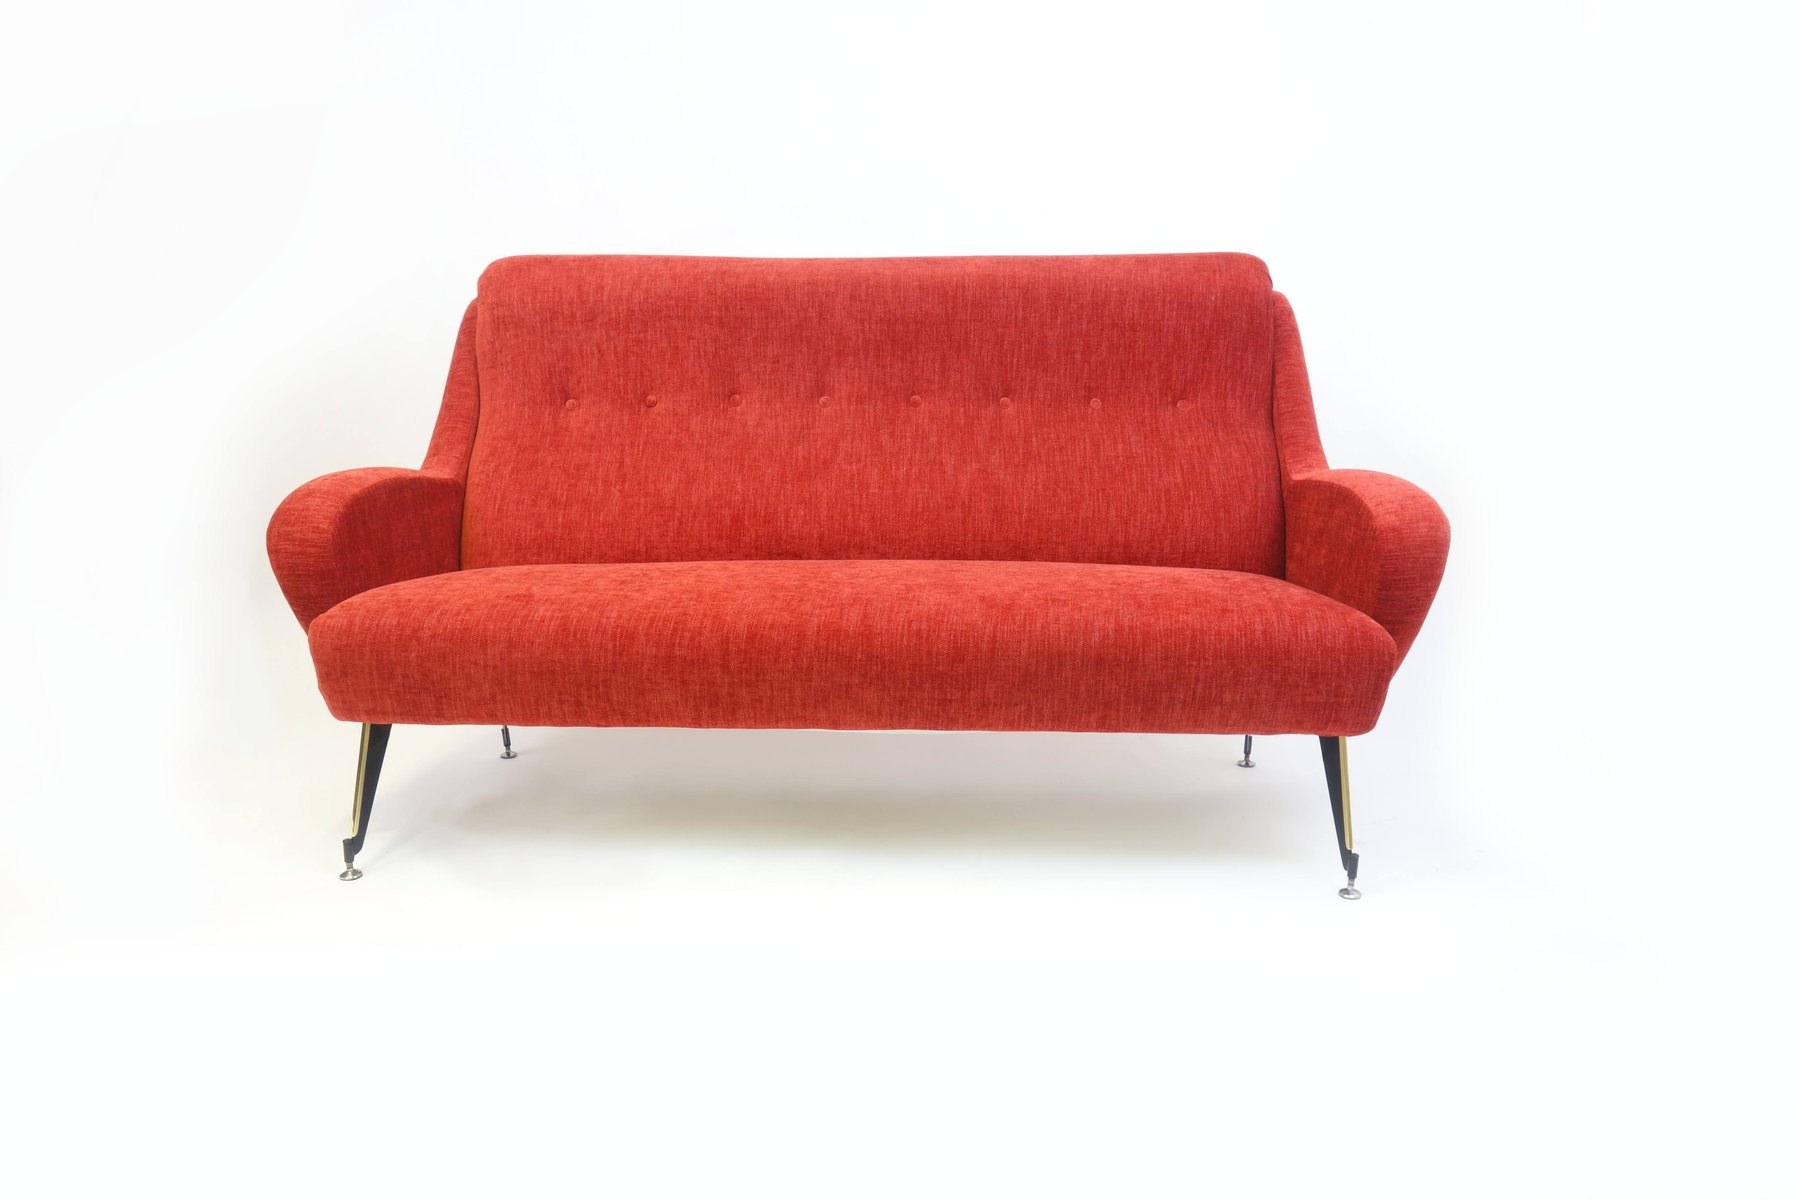 Italian Red Velvet Three Seater Sofa 1960s for sale at Pamono